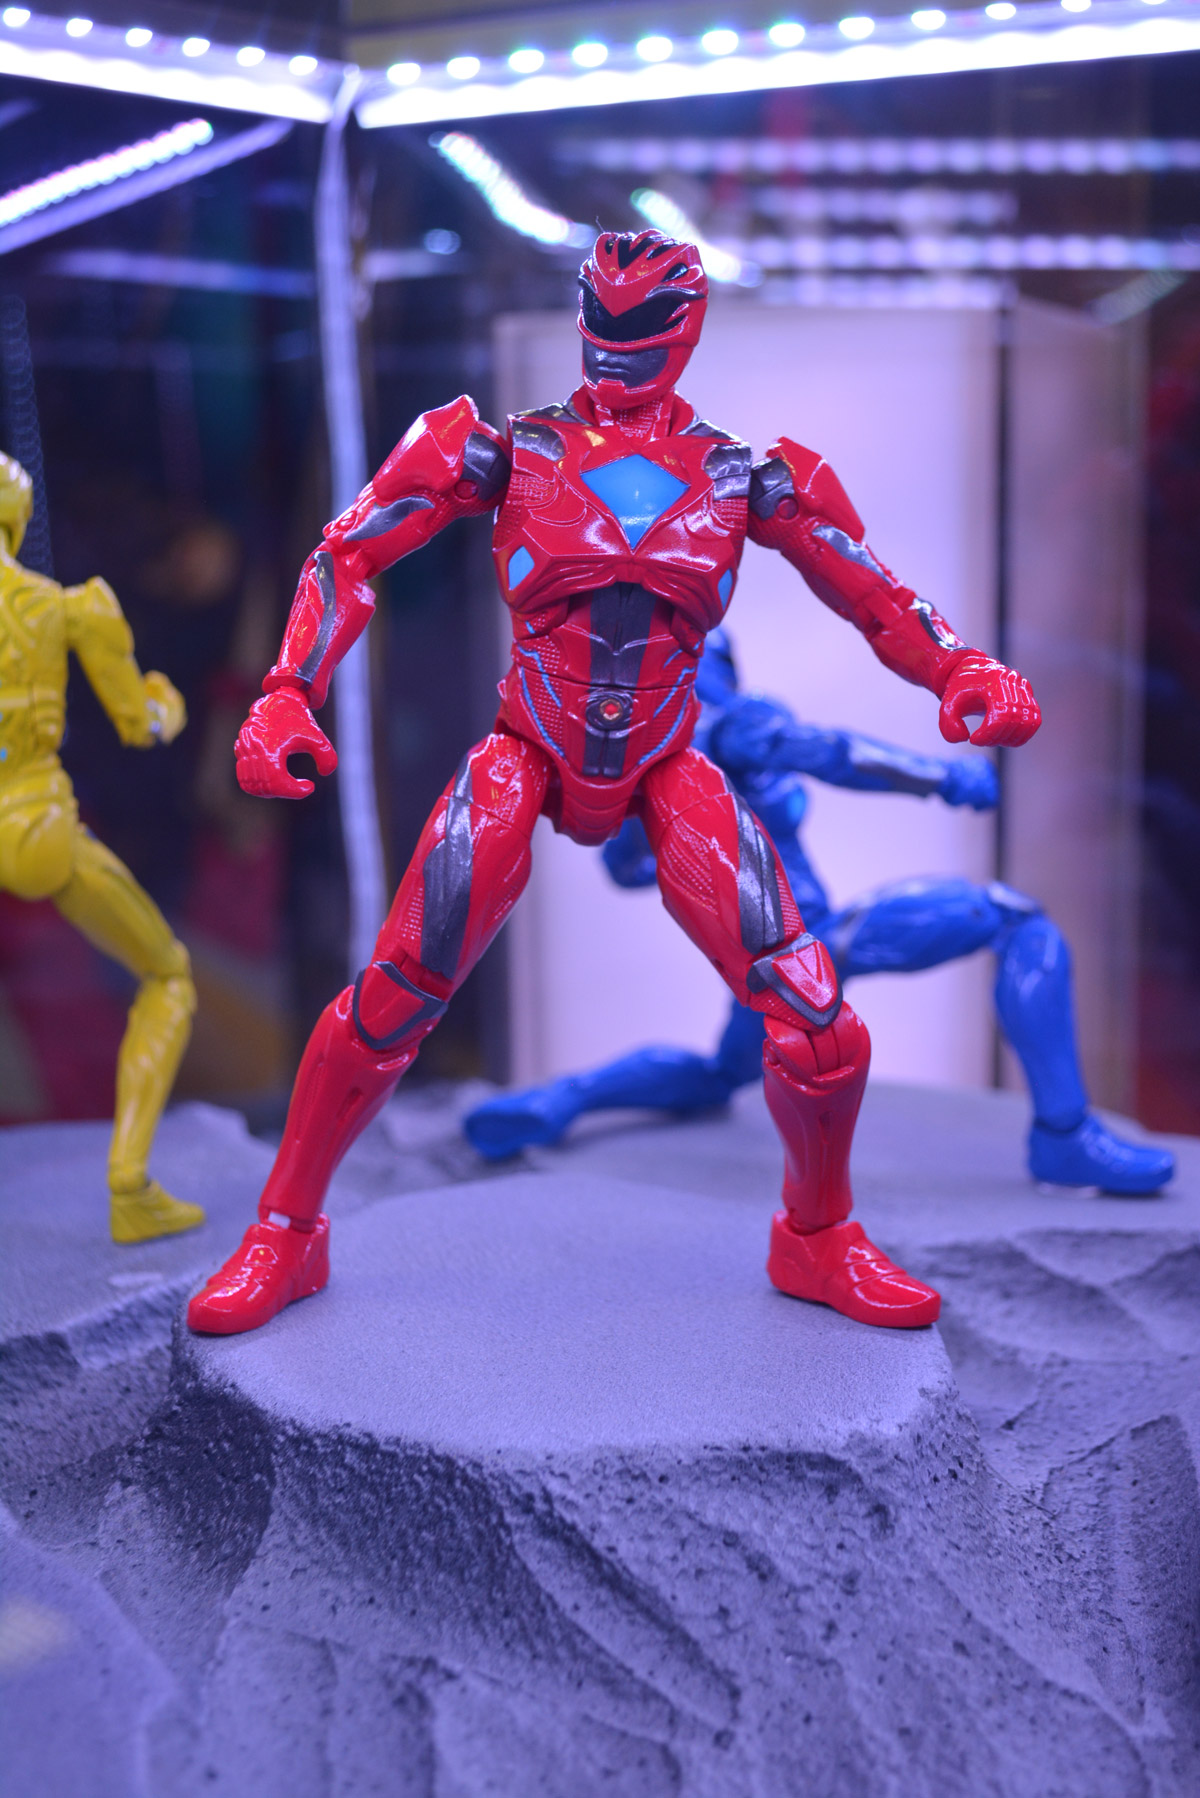 Best Power Ranger Toys And Action Figures : Sdcc power rangers action figures show new movie look